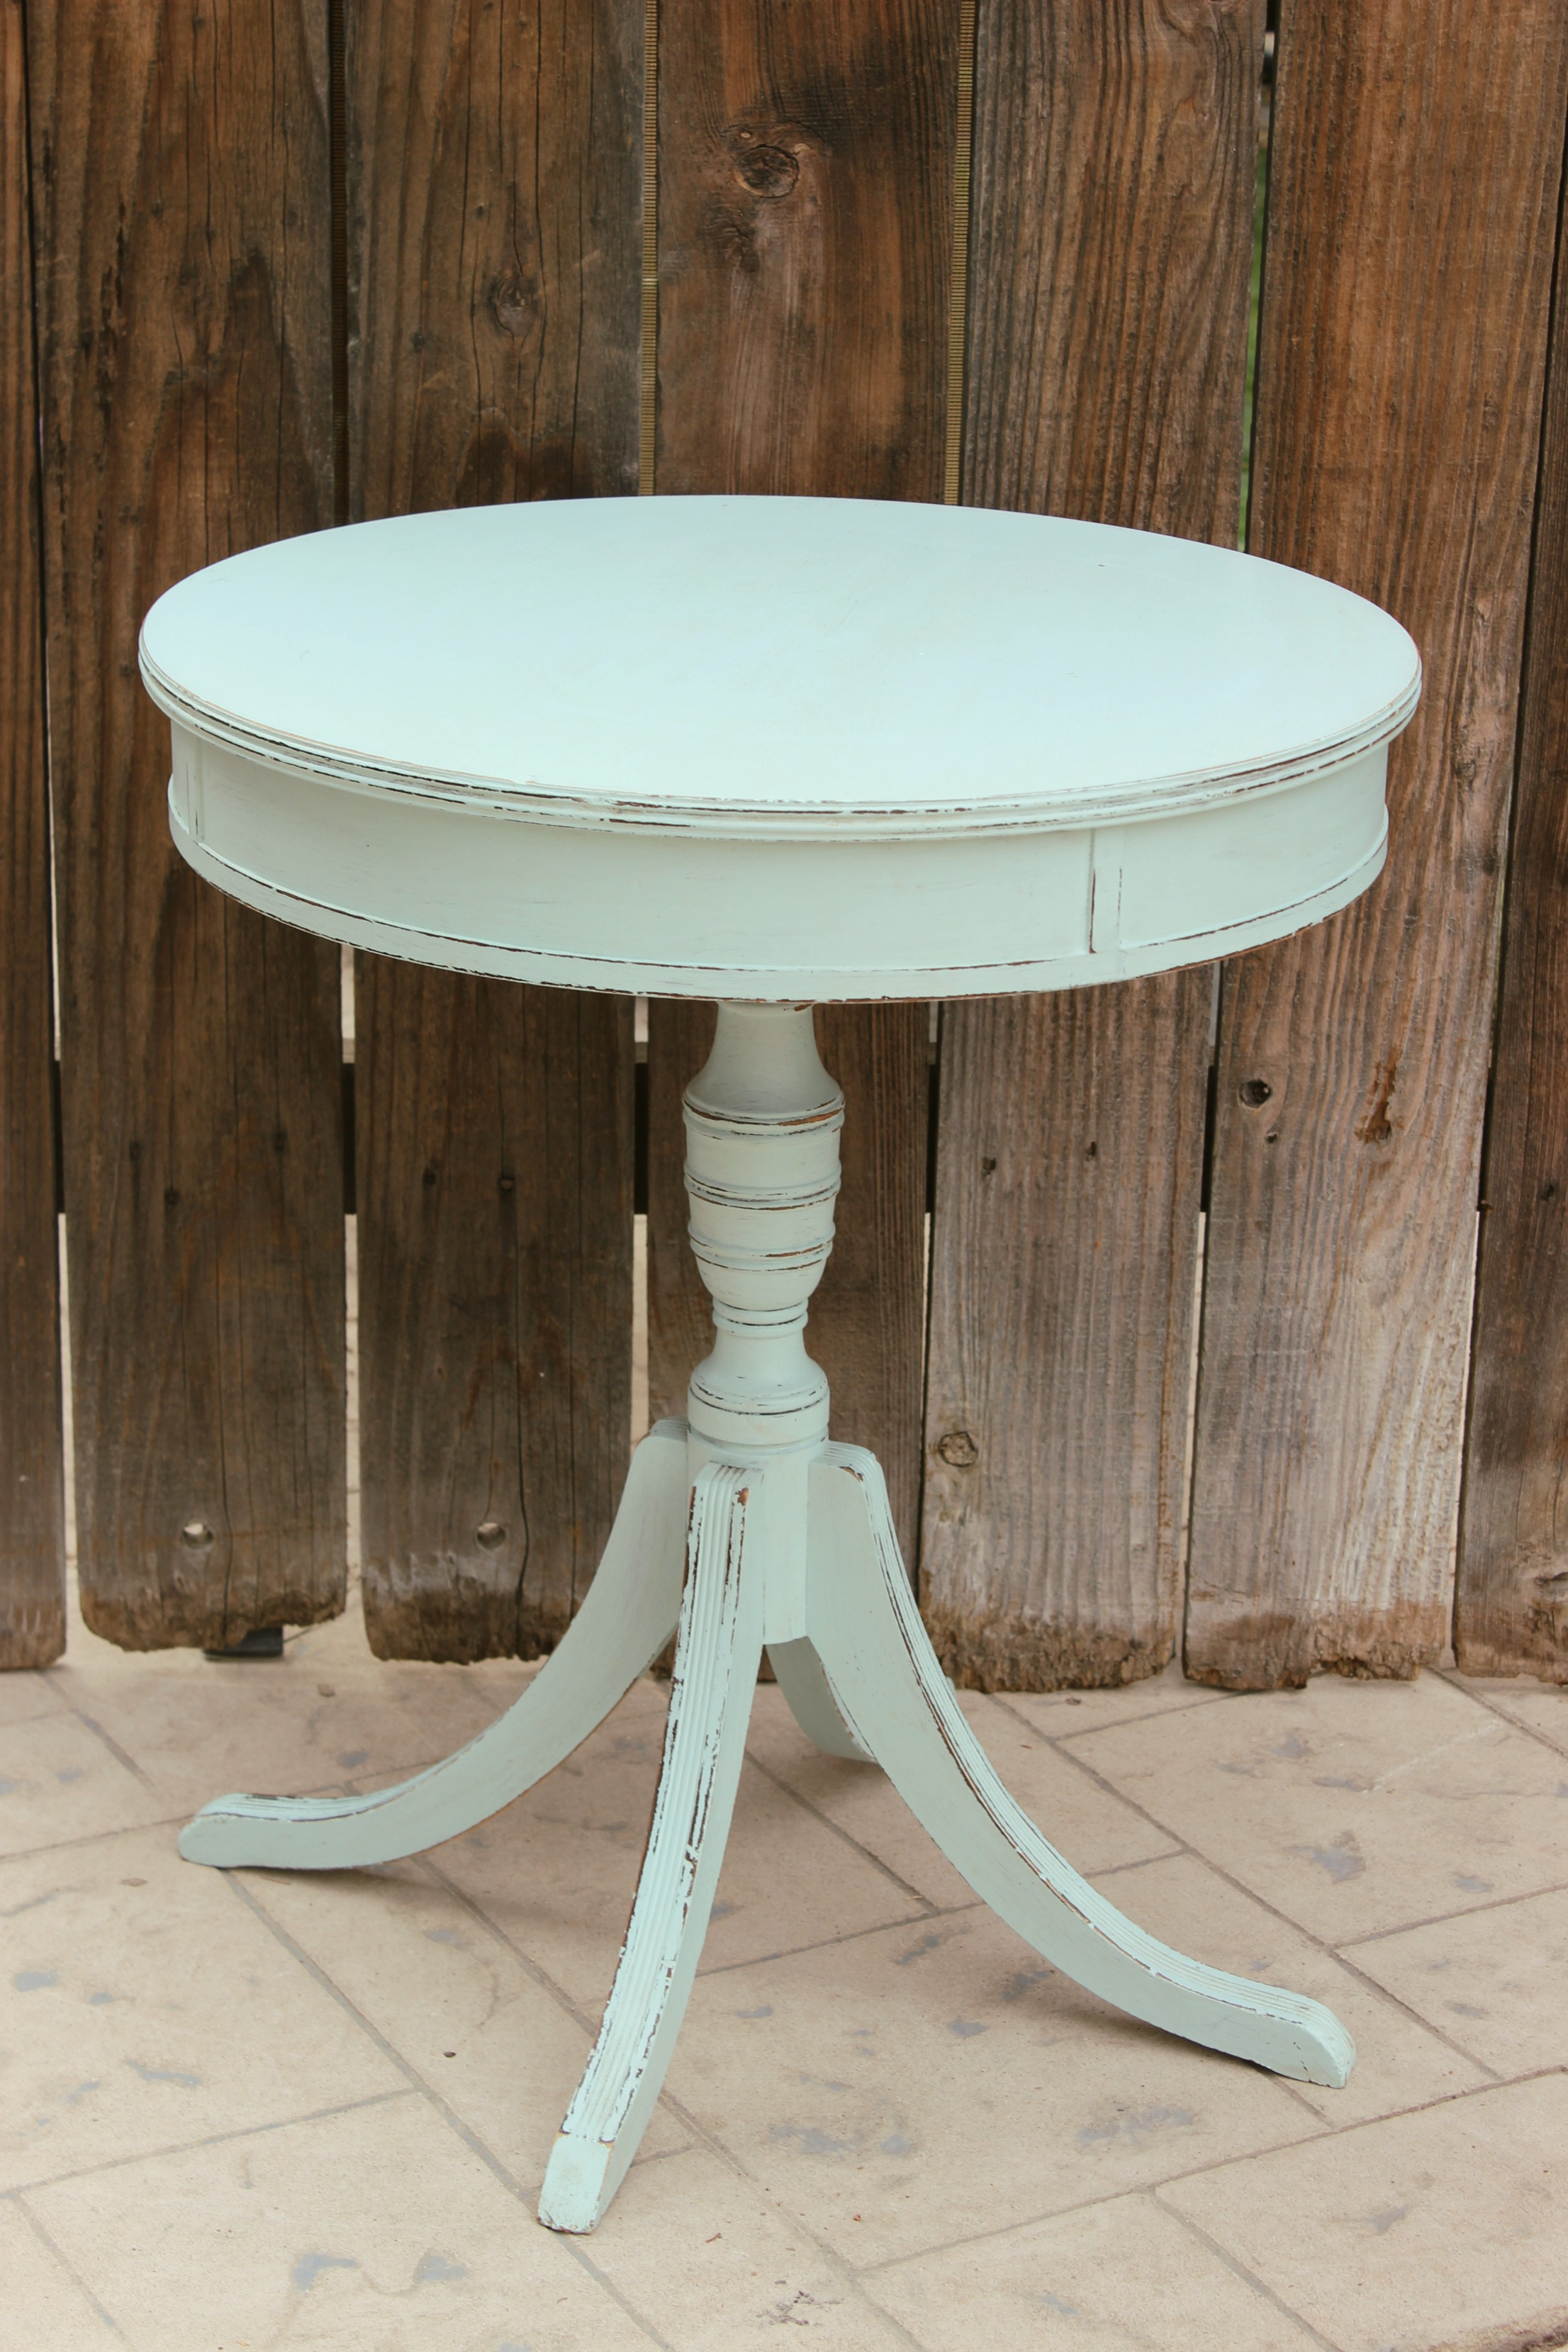 Duck-Egg Blue Duncan Phyfe Table.jpg